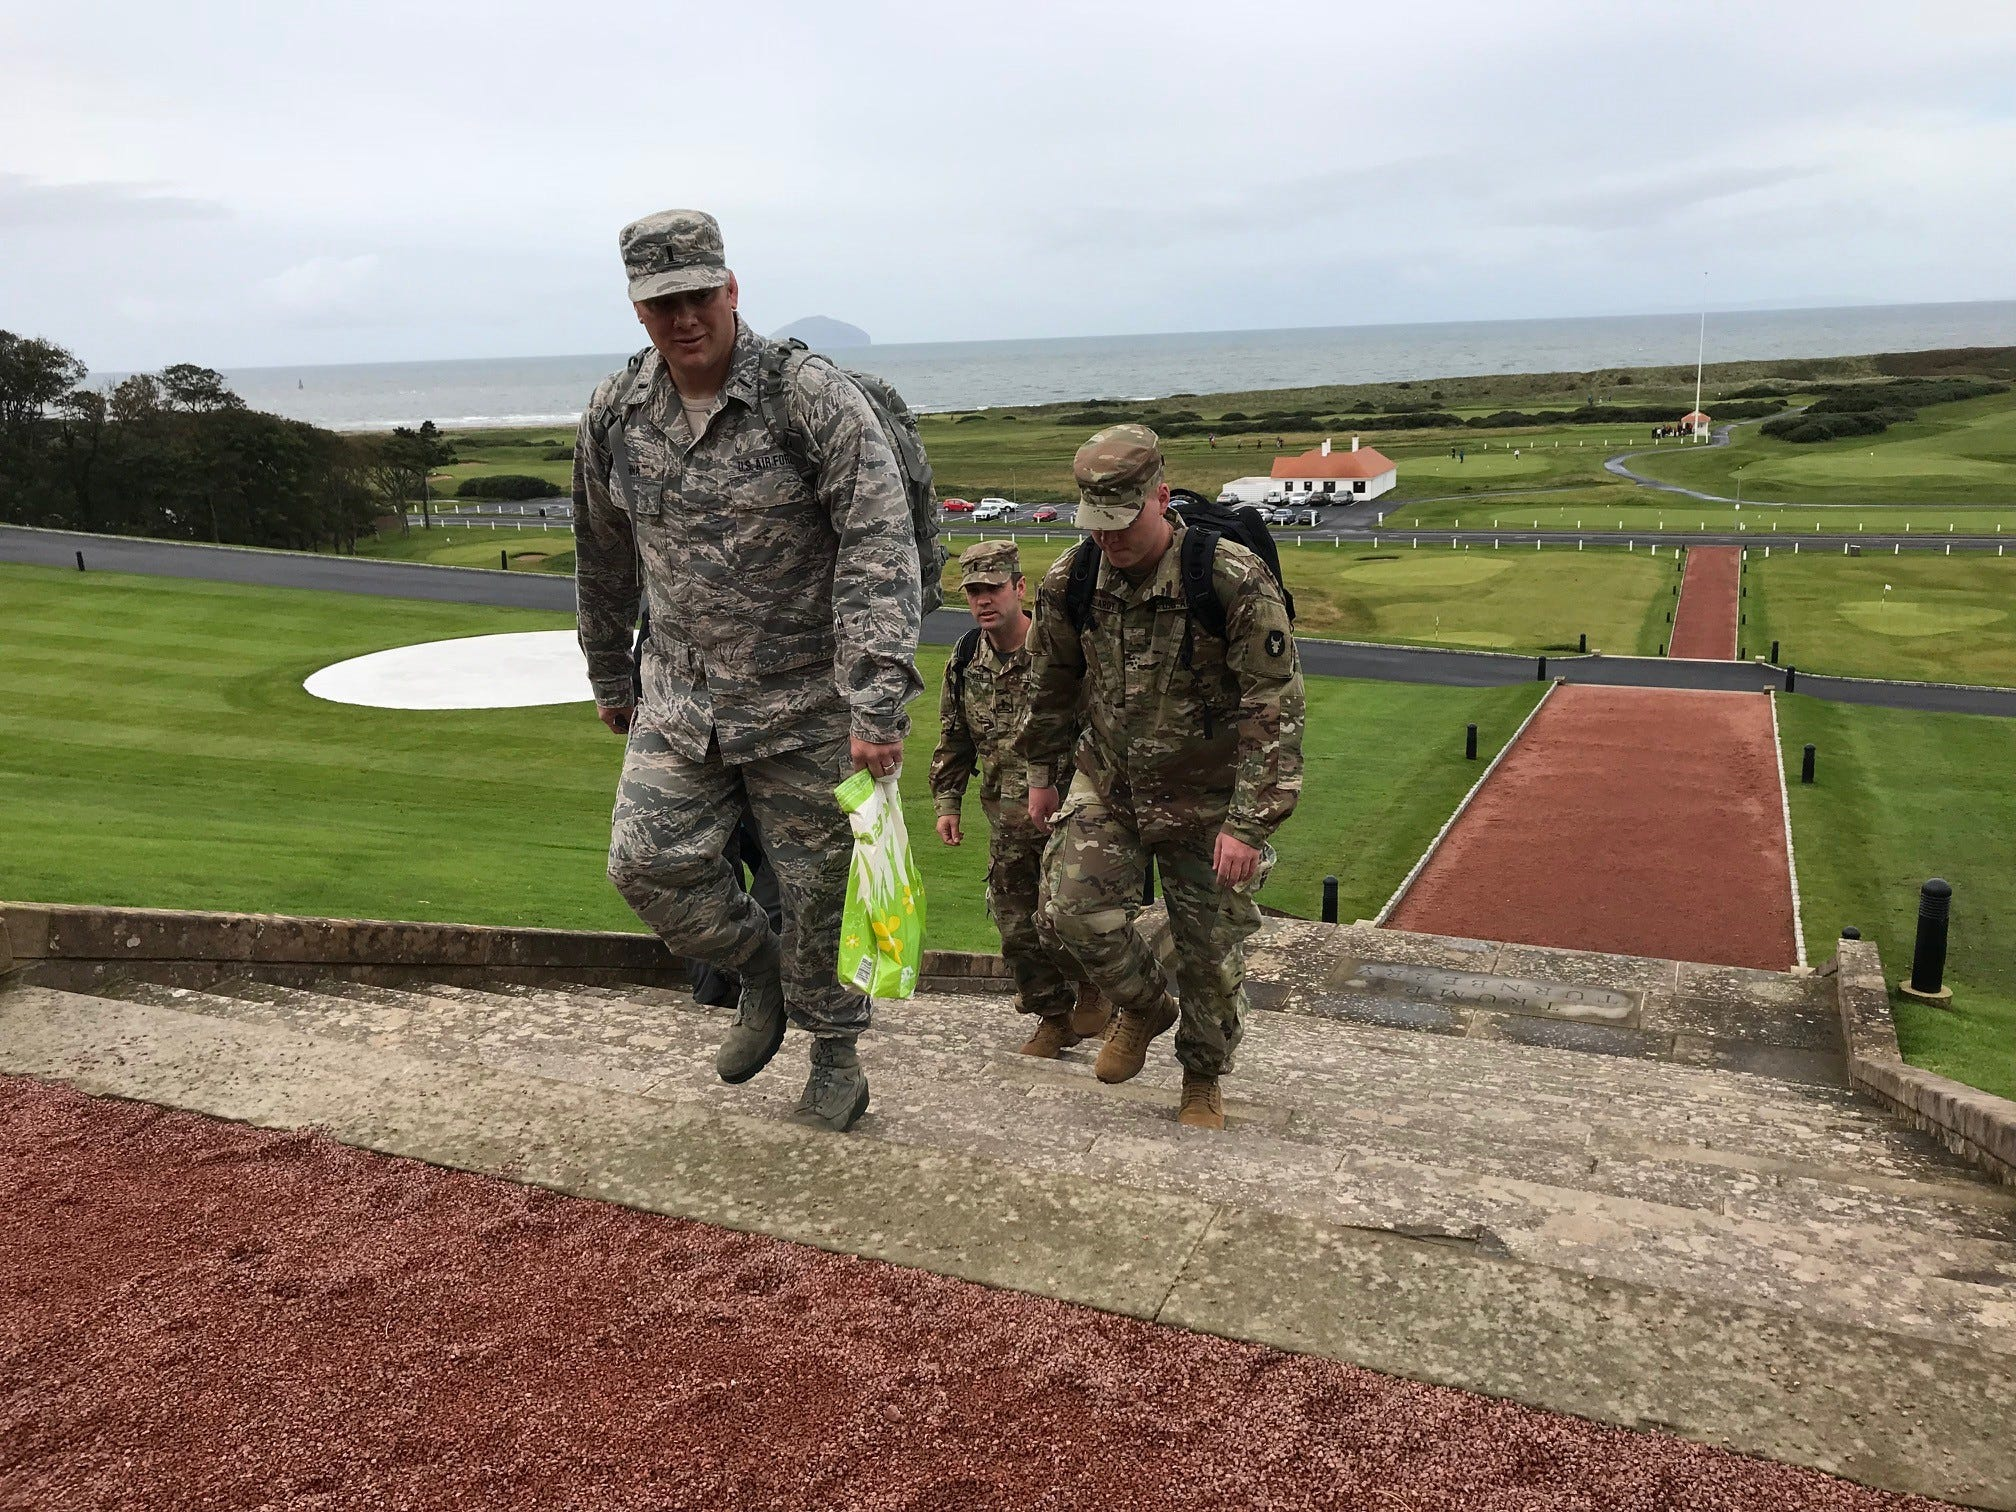 Iowa National Guard members stayed at Trump Turnberry